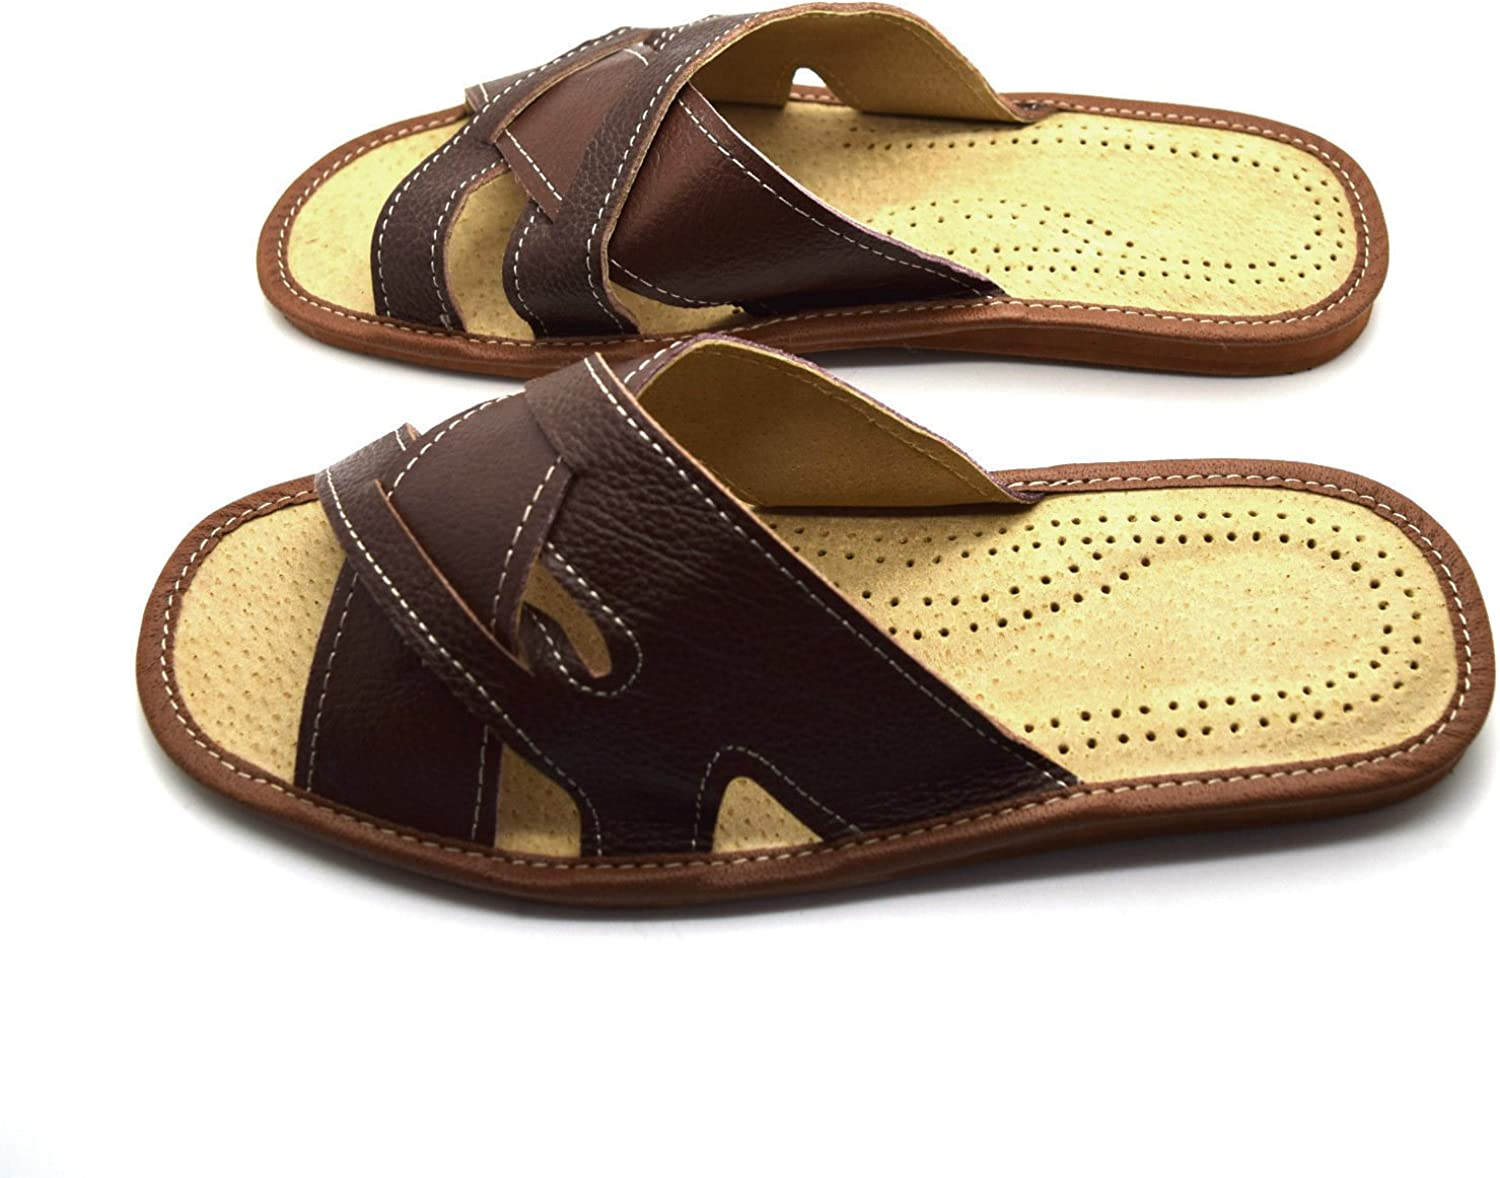 Mens Leather Slippers Slip On Shoes Size 6 7 8 9 10 11 12 UK Mules Sandals